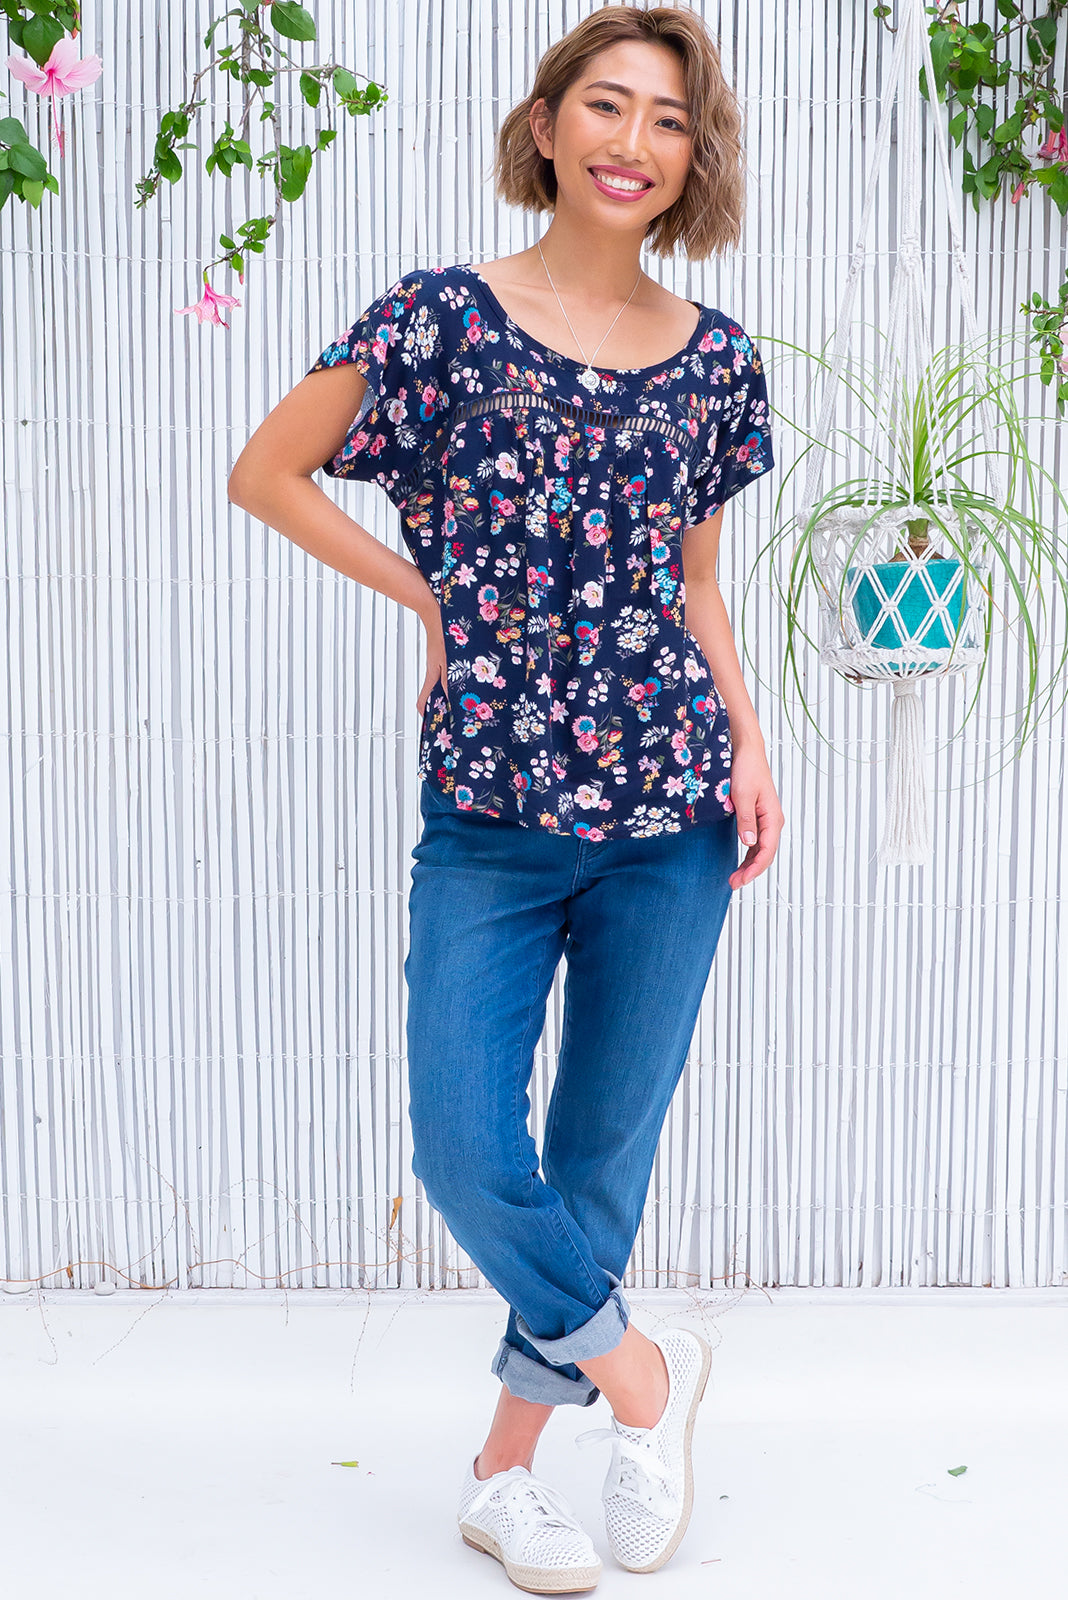 The Day Tripper Newport Navy Top is an airy, bloused fit top, designed to be worn soft and loose featuring scooped neckline, lace insert across chest, cap sleeves and 100% viscose in navy base with sweet floral print.